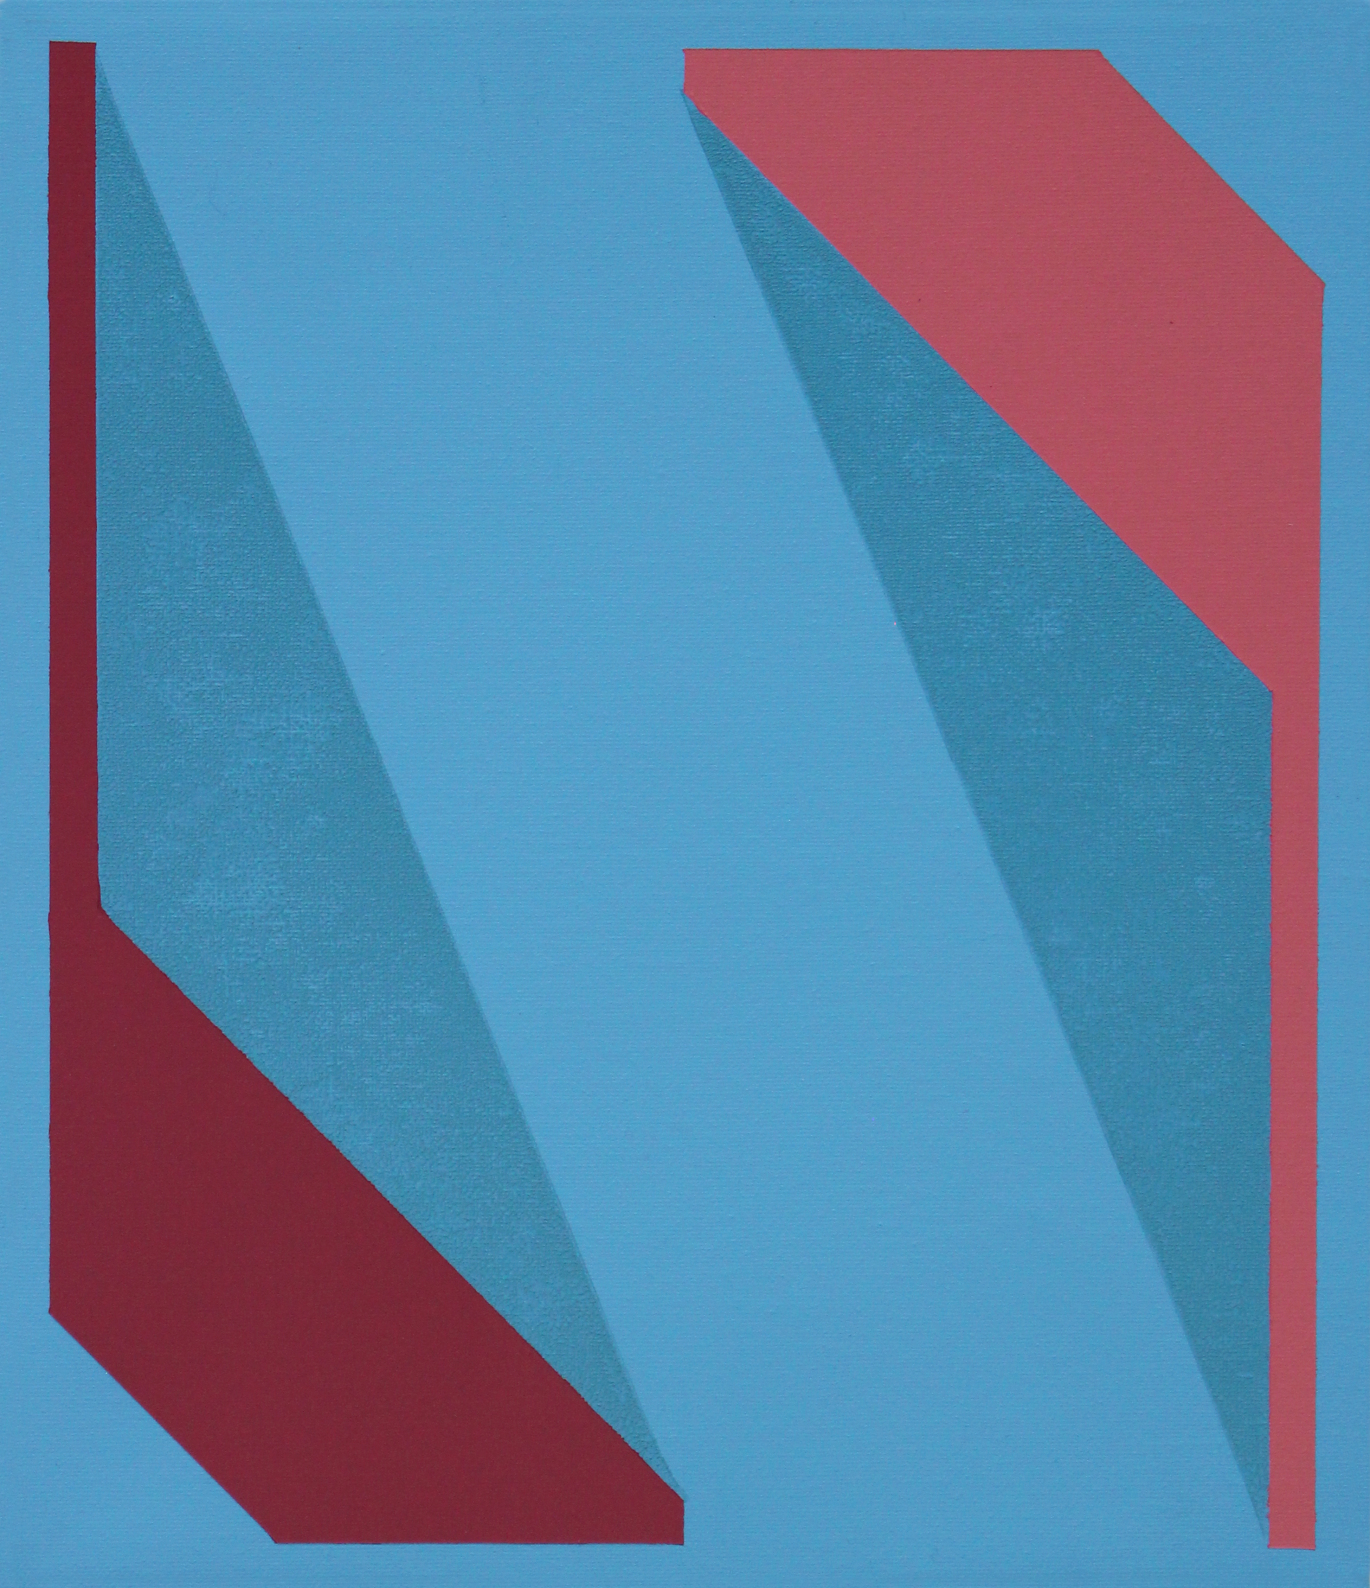 Untitled (Blue Red Pink)